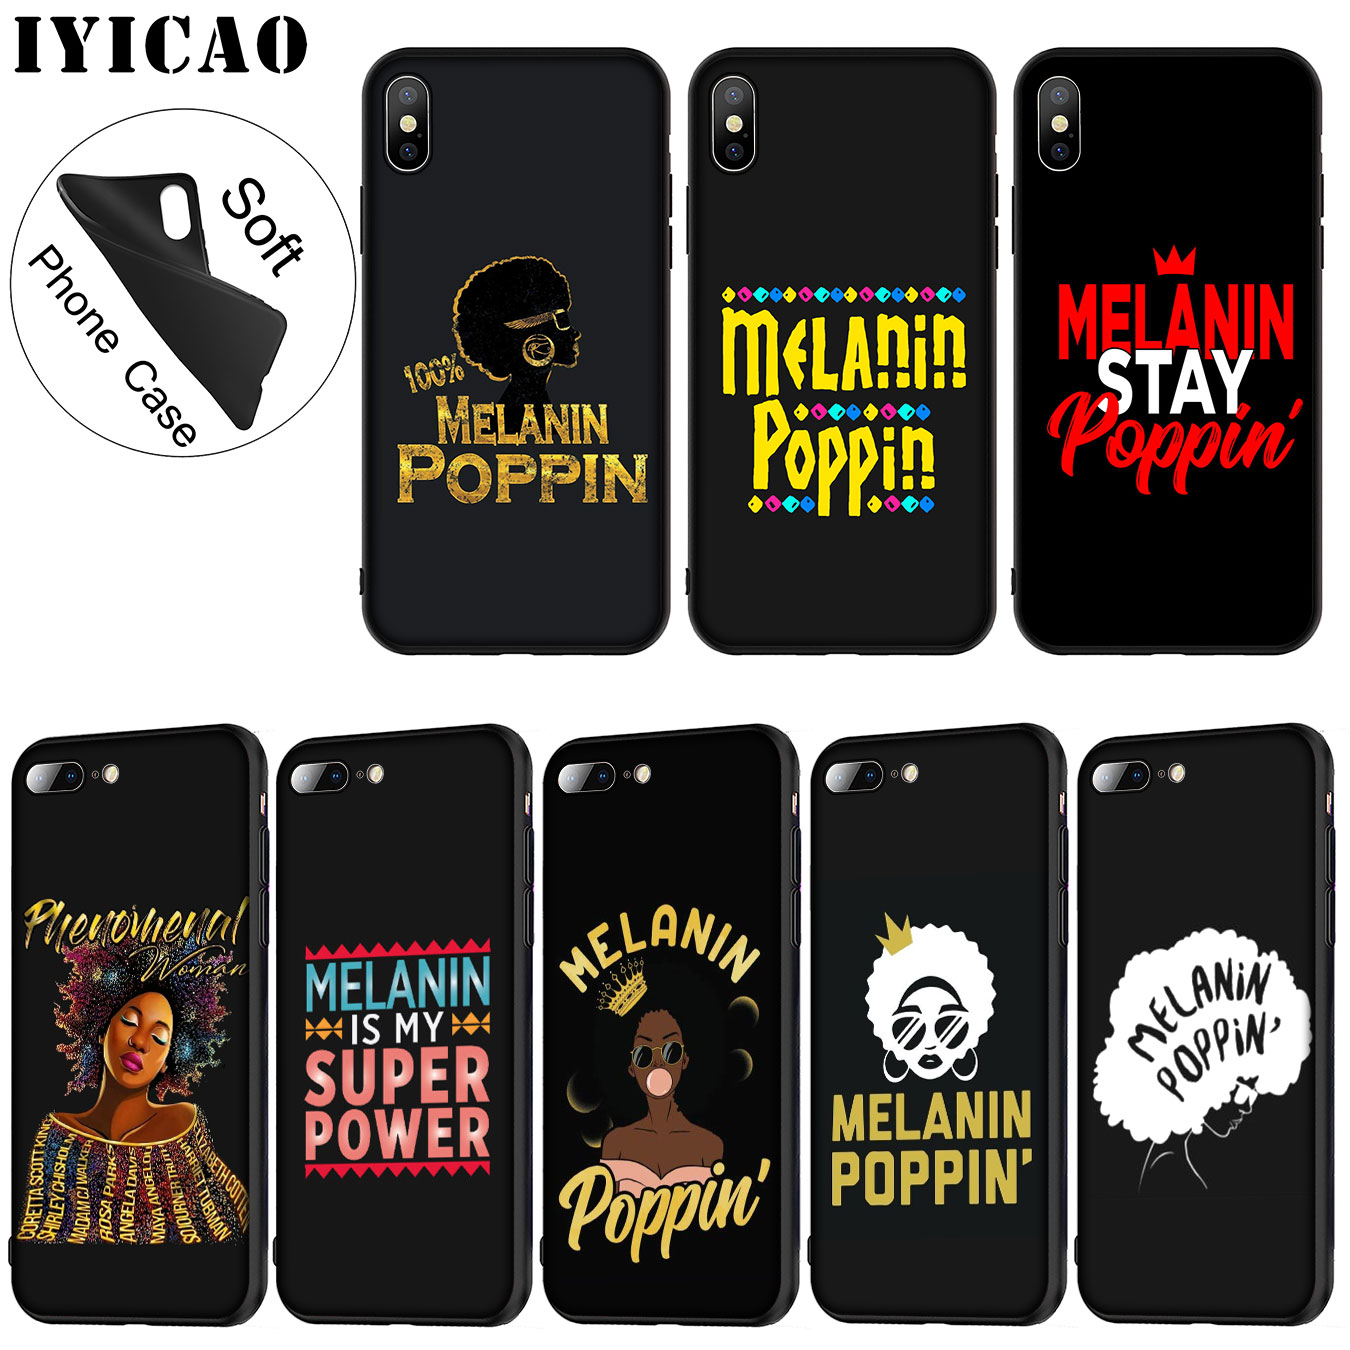 In Audacious Iyicao 2bunz Melanin Poppin Aba Soft Silicone Phone Case For Iphone Xr X Xs Max 6 6s 7 8 Plus 5 5s Se Tpu Black Cover Superior Quality